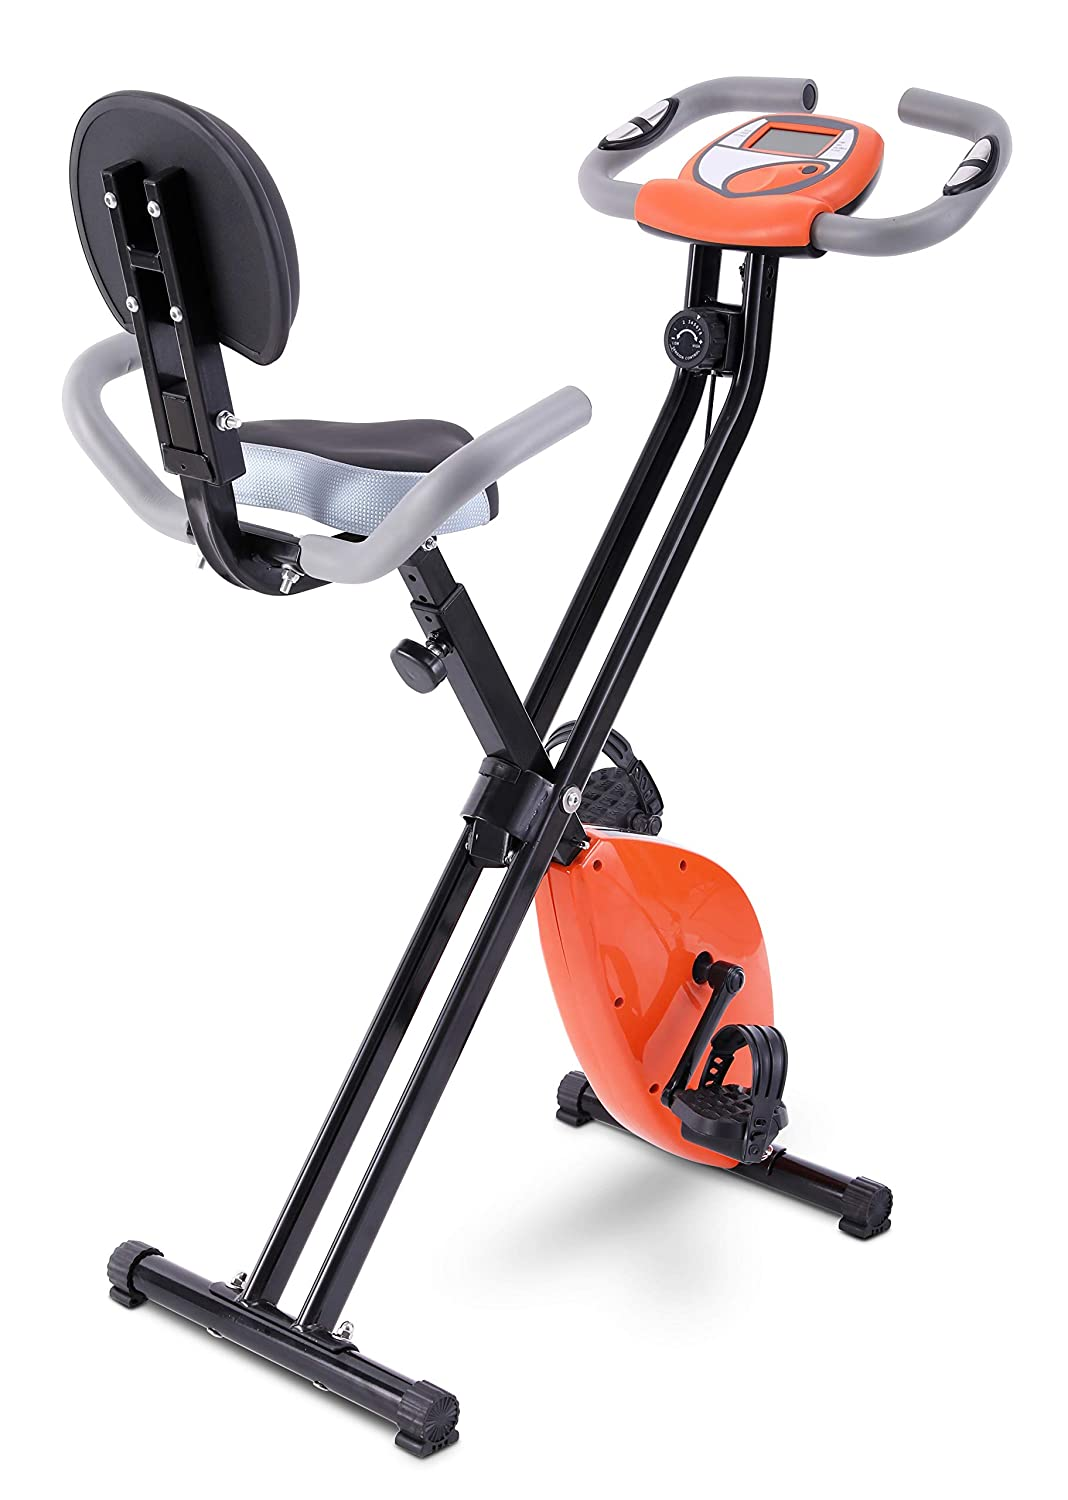 FITODO Upright Stationary Exercise Bike Magnetic Resistance Adjustable Smoothly and Quietly GOTODO